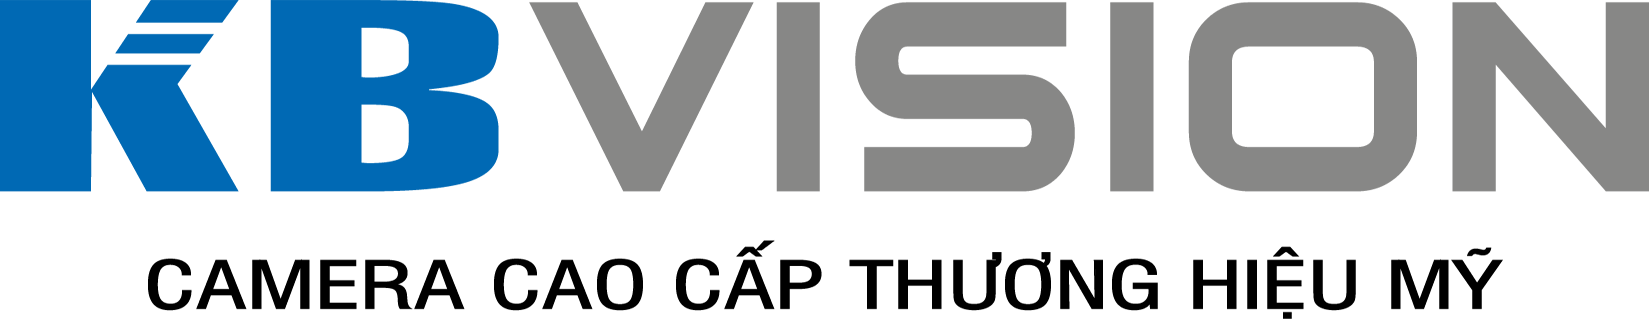 KBVISION